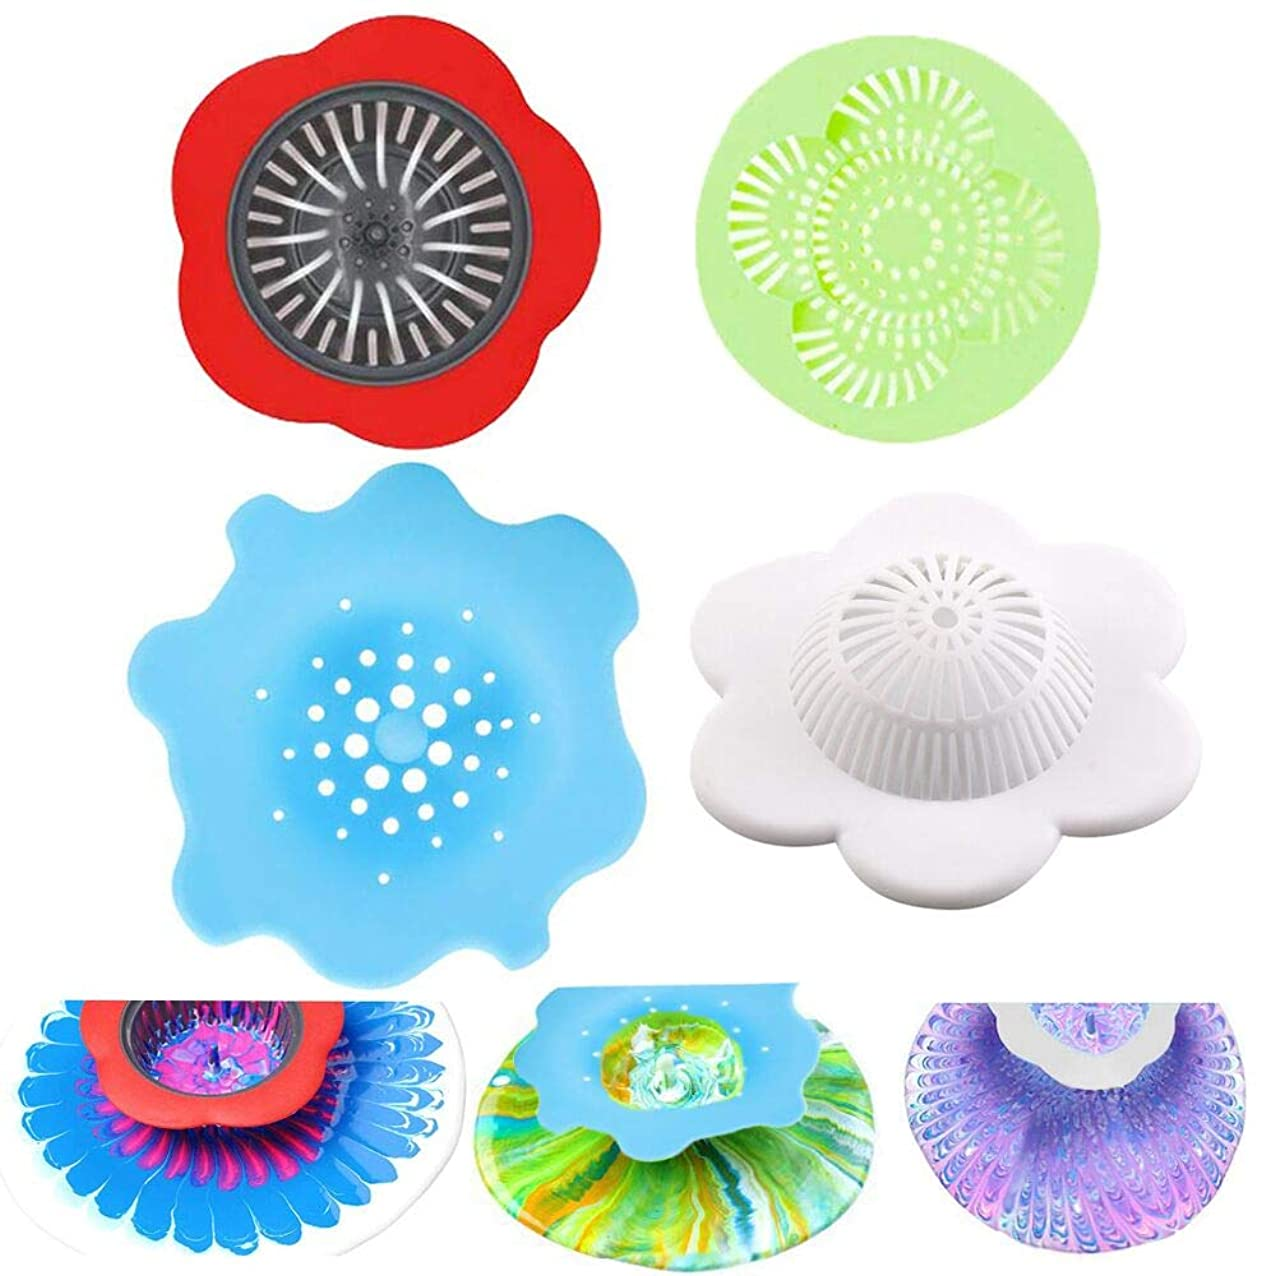 Acrylic Pouring Strainers Plastic Silicone Strainer Flower Drain Basket Acrylic Paint Pouring Supplies dckxaenyjdqvc097